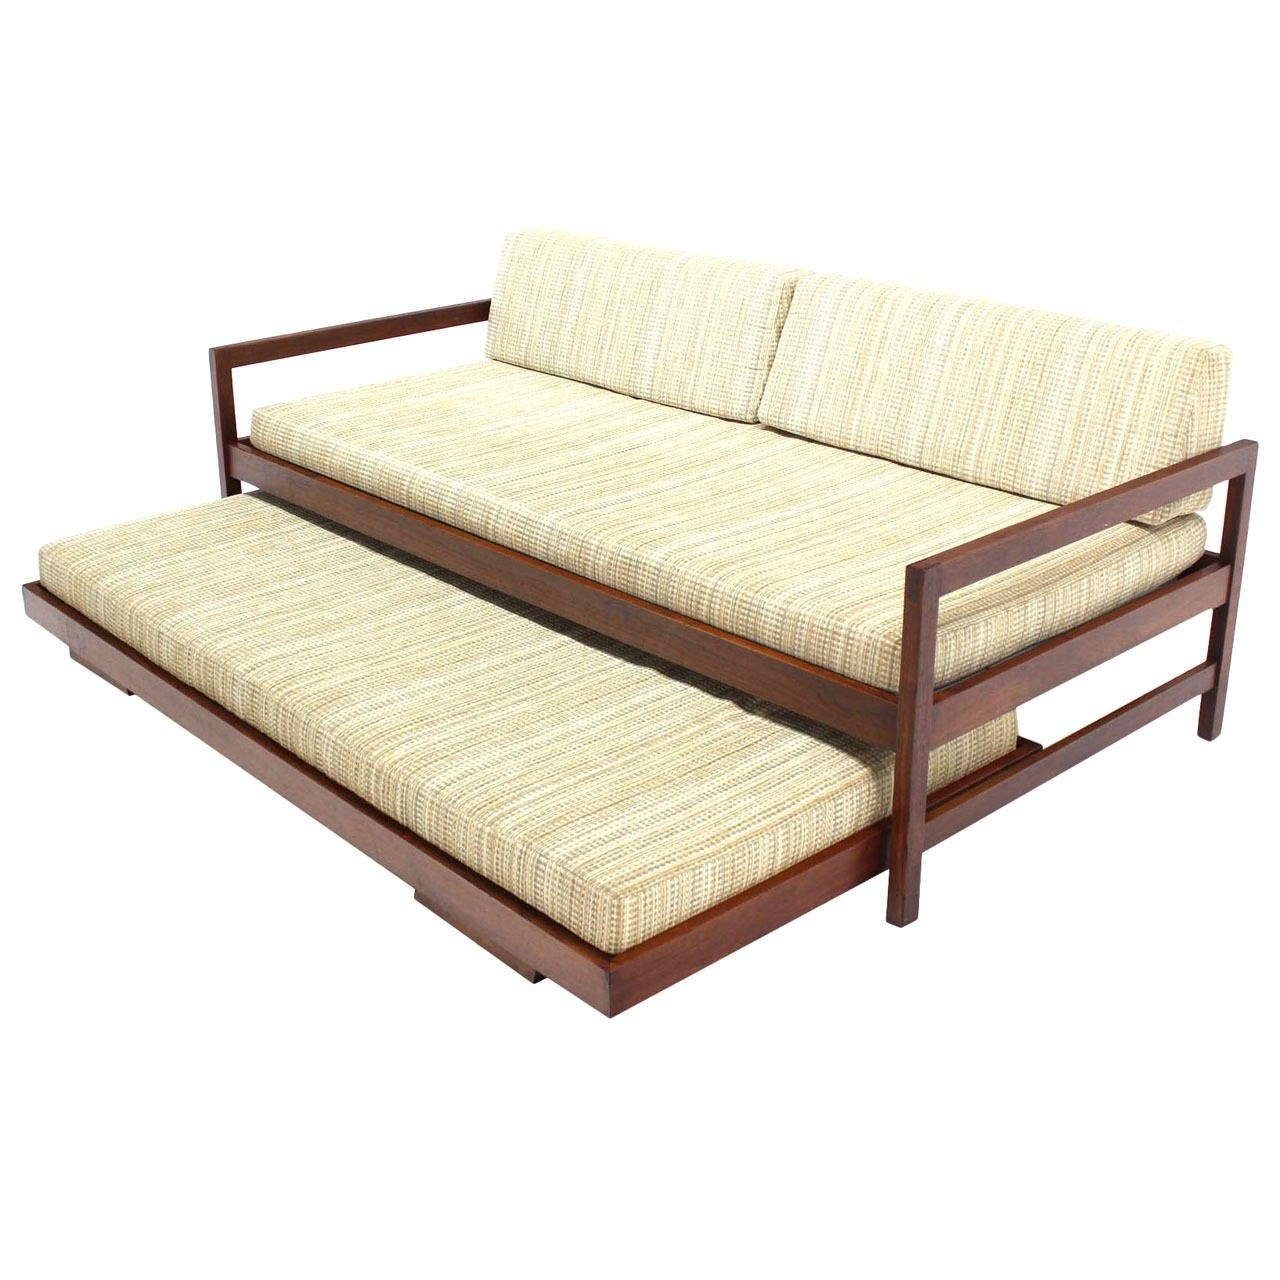 Sofas Center : Sofa Daybed With Trundle Style Trundlesofa Ideas With Sofas Daybed With Trundle (Image 14 of 20)